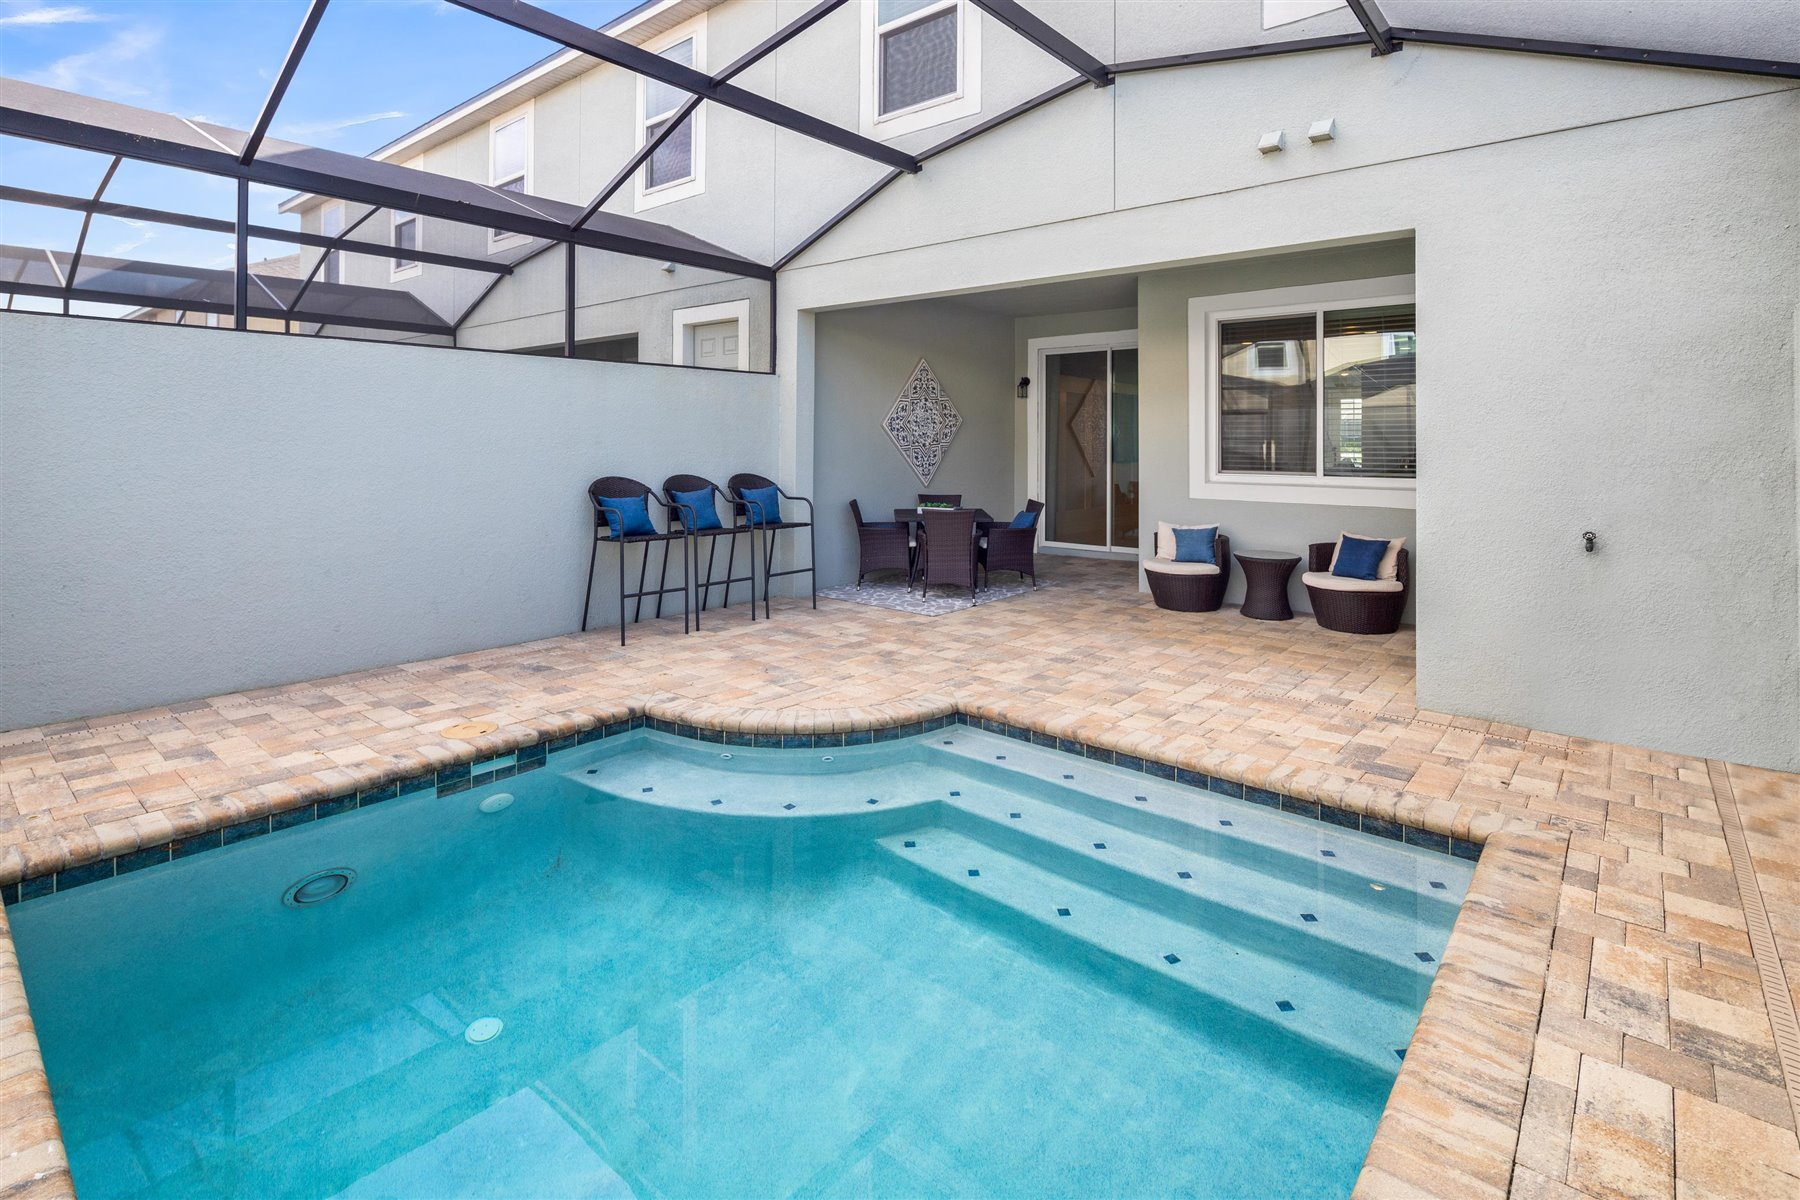 Clearwater Plan WaterFeatures at Solara Resort in Kissimmee Florida by Mattamy Homes